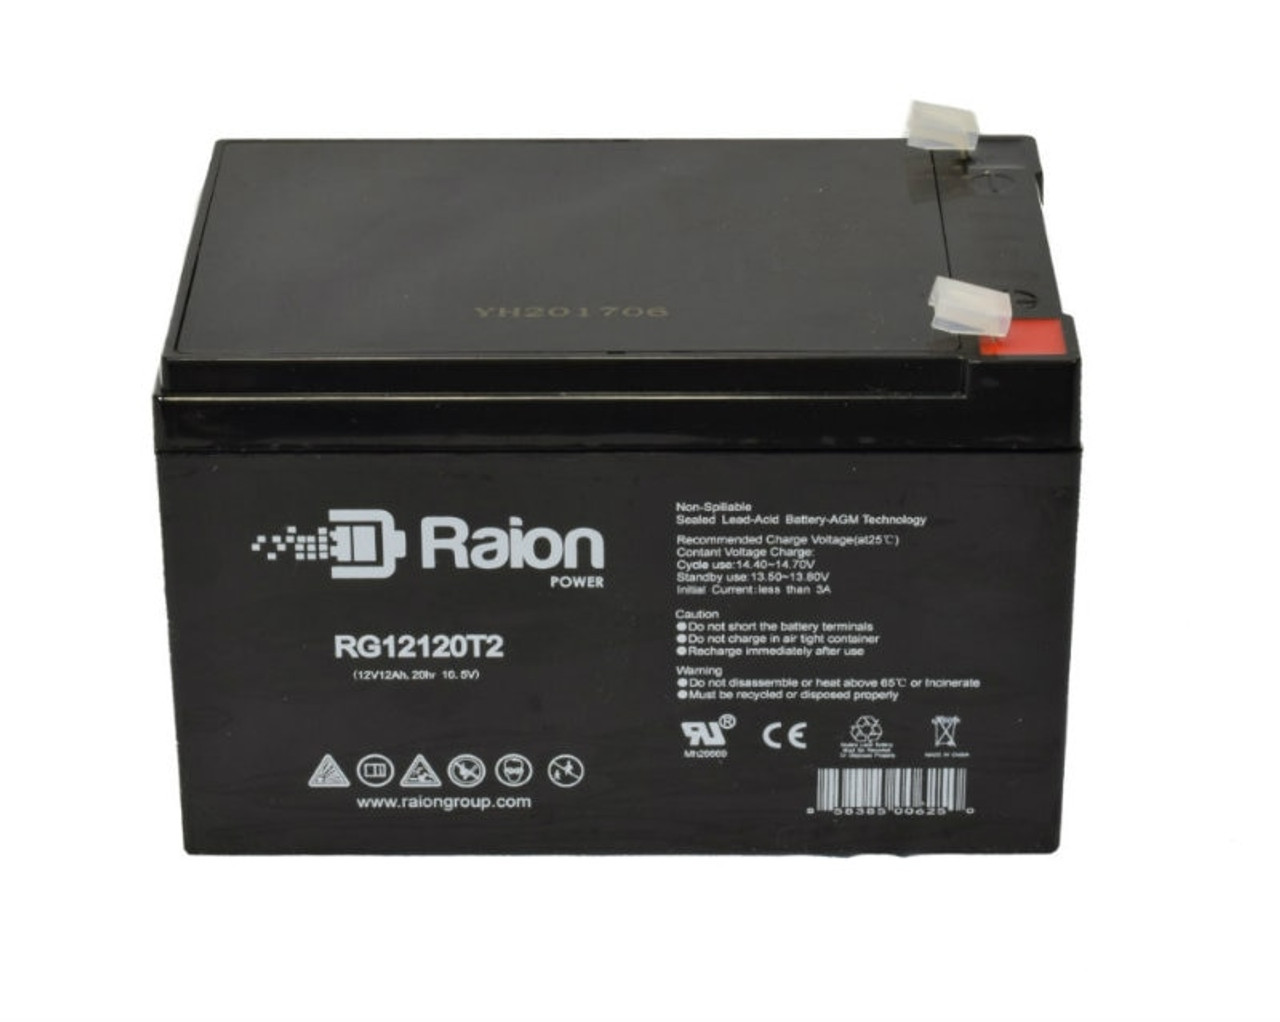 Raion Power RG12120T2 12V 12Ah AGM Battery With F2 Terminals